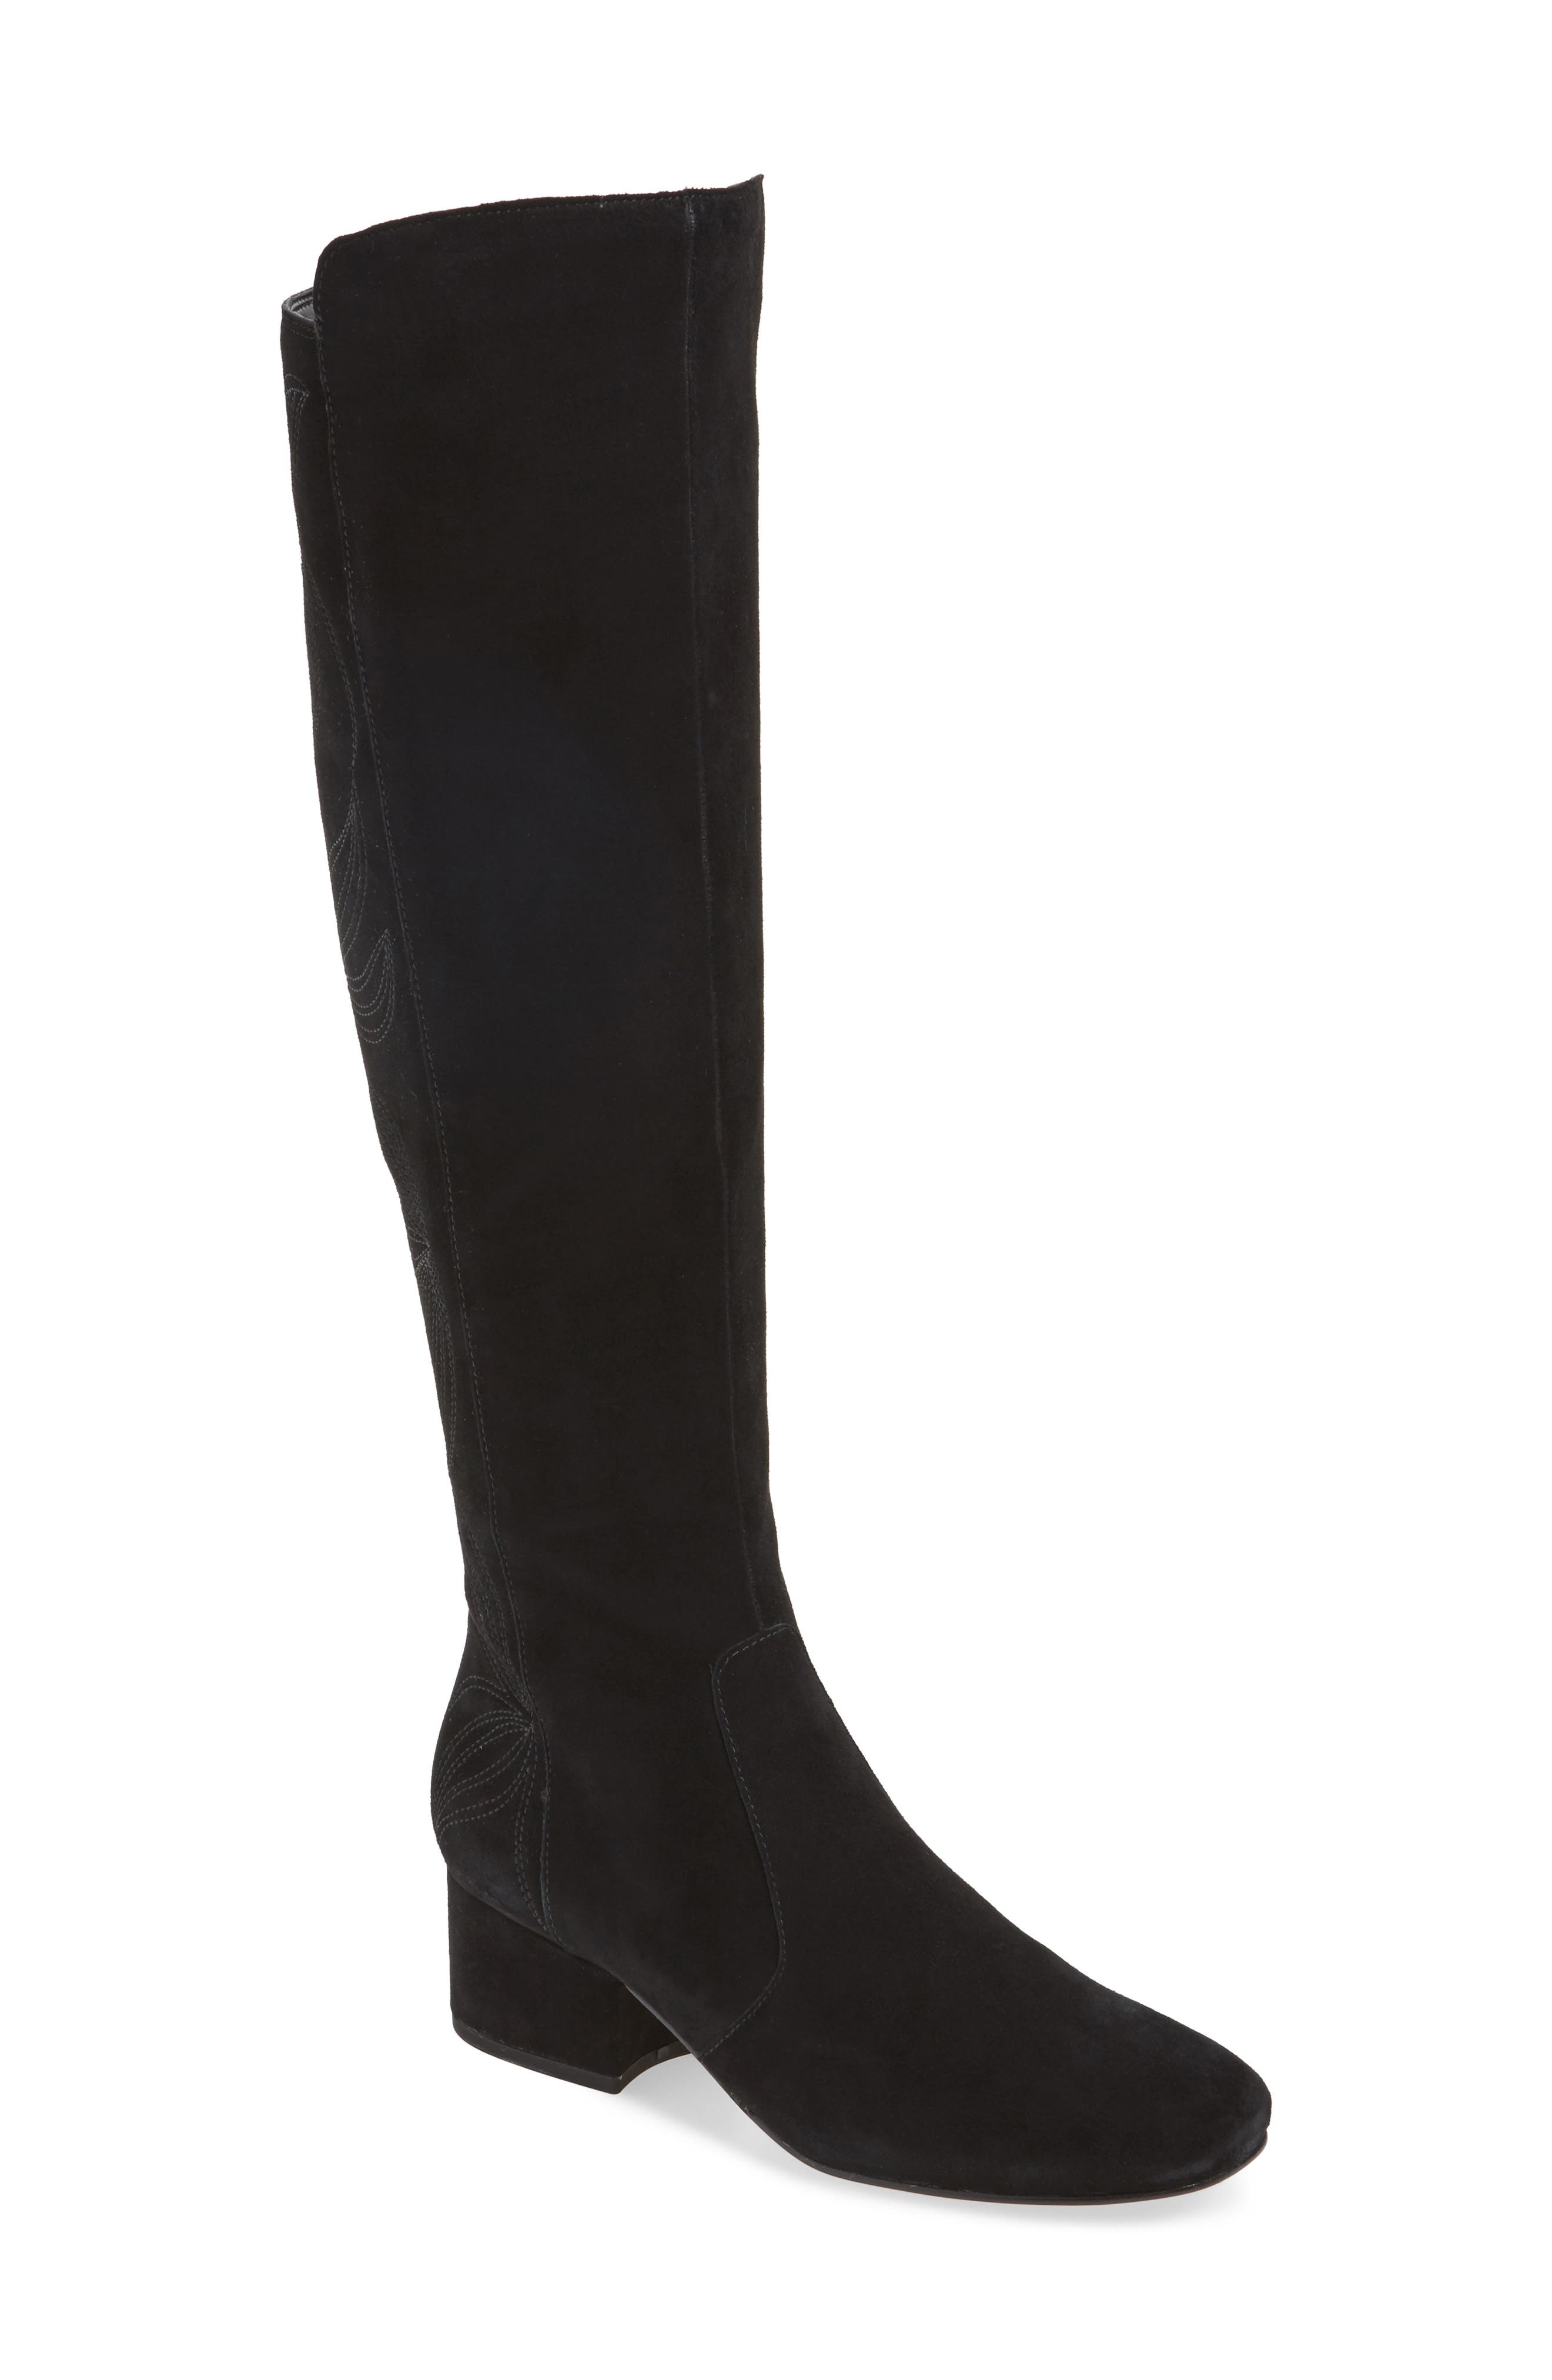 Tawnna Knee High Boot,                         Main,                         color, Black Suede